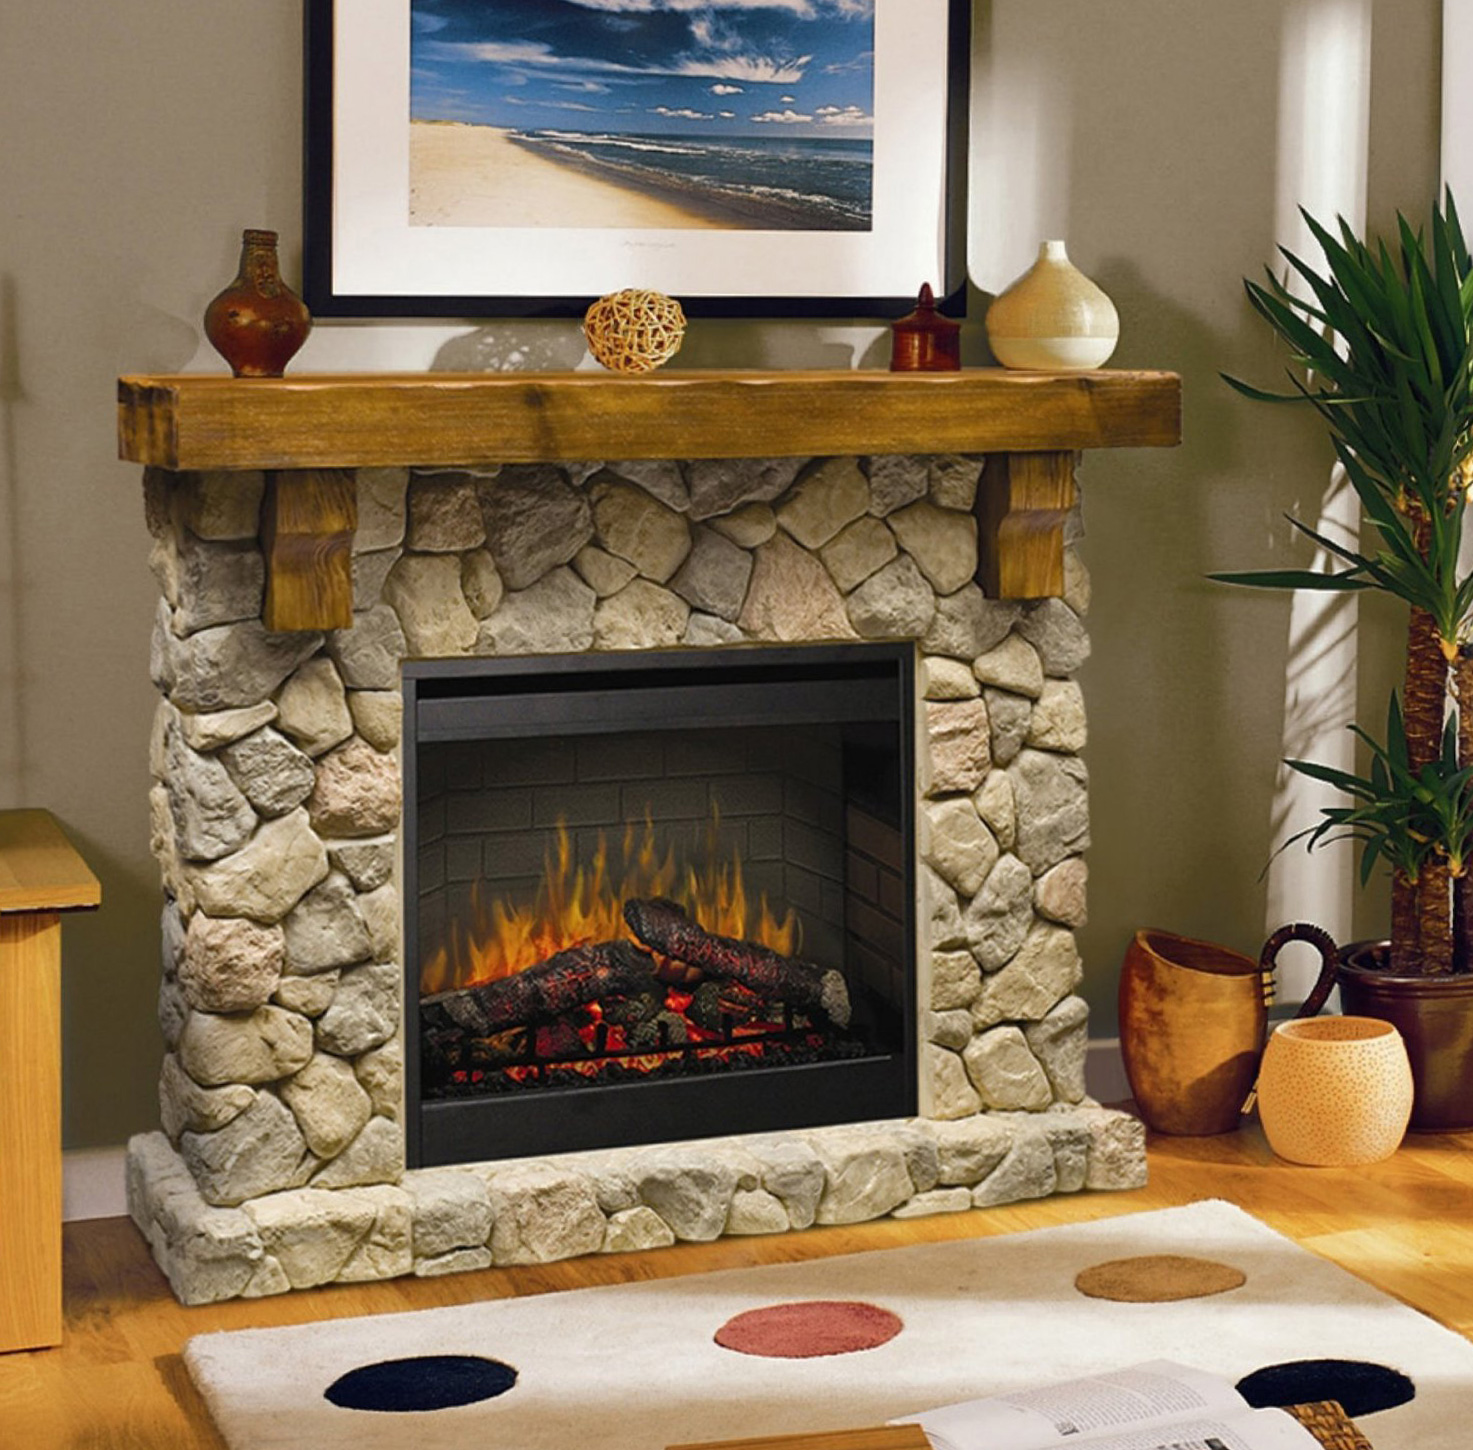 20 Best Ventless Fireplace Ideas and Designs To Beautify ...